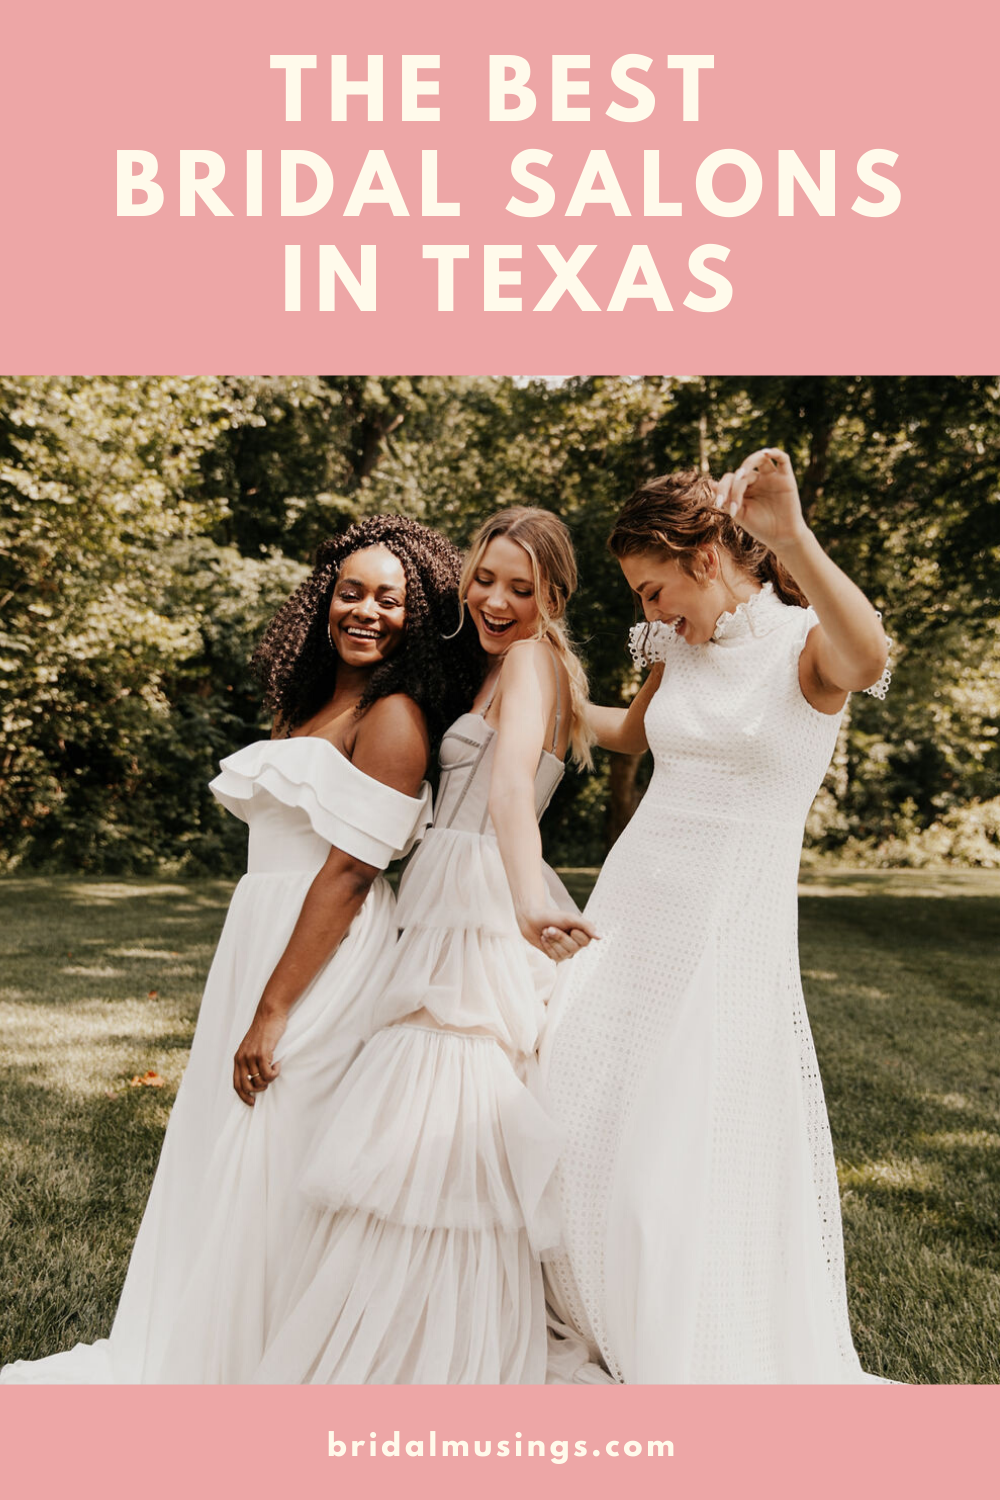 Where To Shop For Your Wedding Dress In Texas Bridal Musings Wedding Dresses Beautiful Wedding Dresses Texas Bridal [ 1500 x 1000 Pixel ]